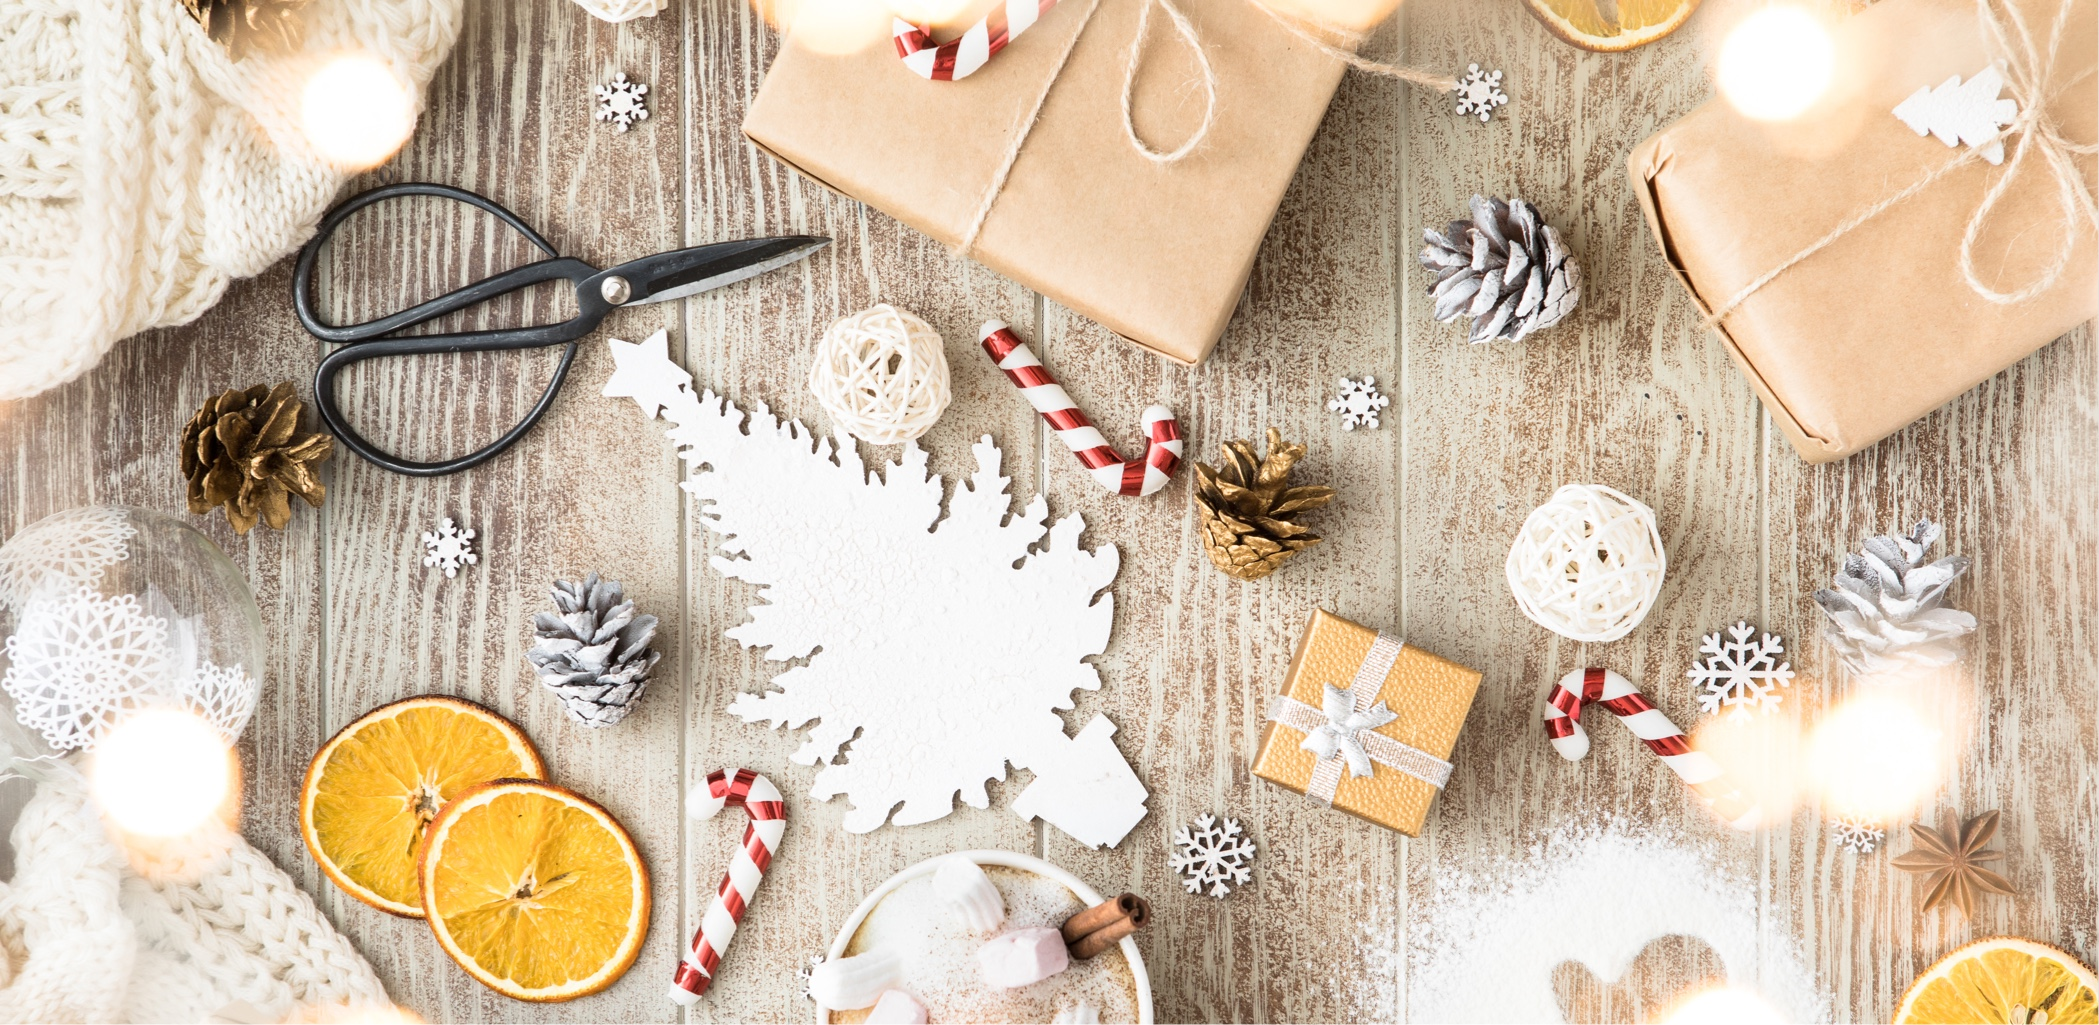 Feeling Festive? - Try these D-I-Ydeas for Decorating!